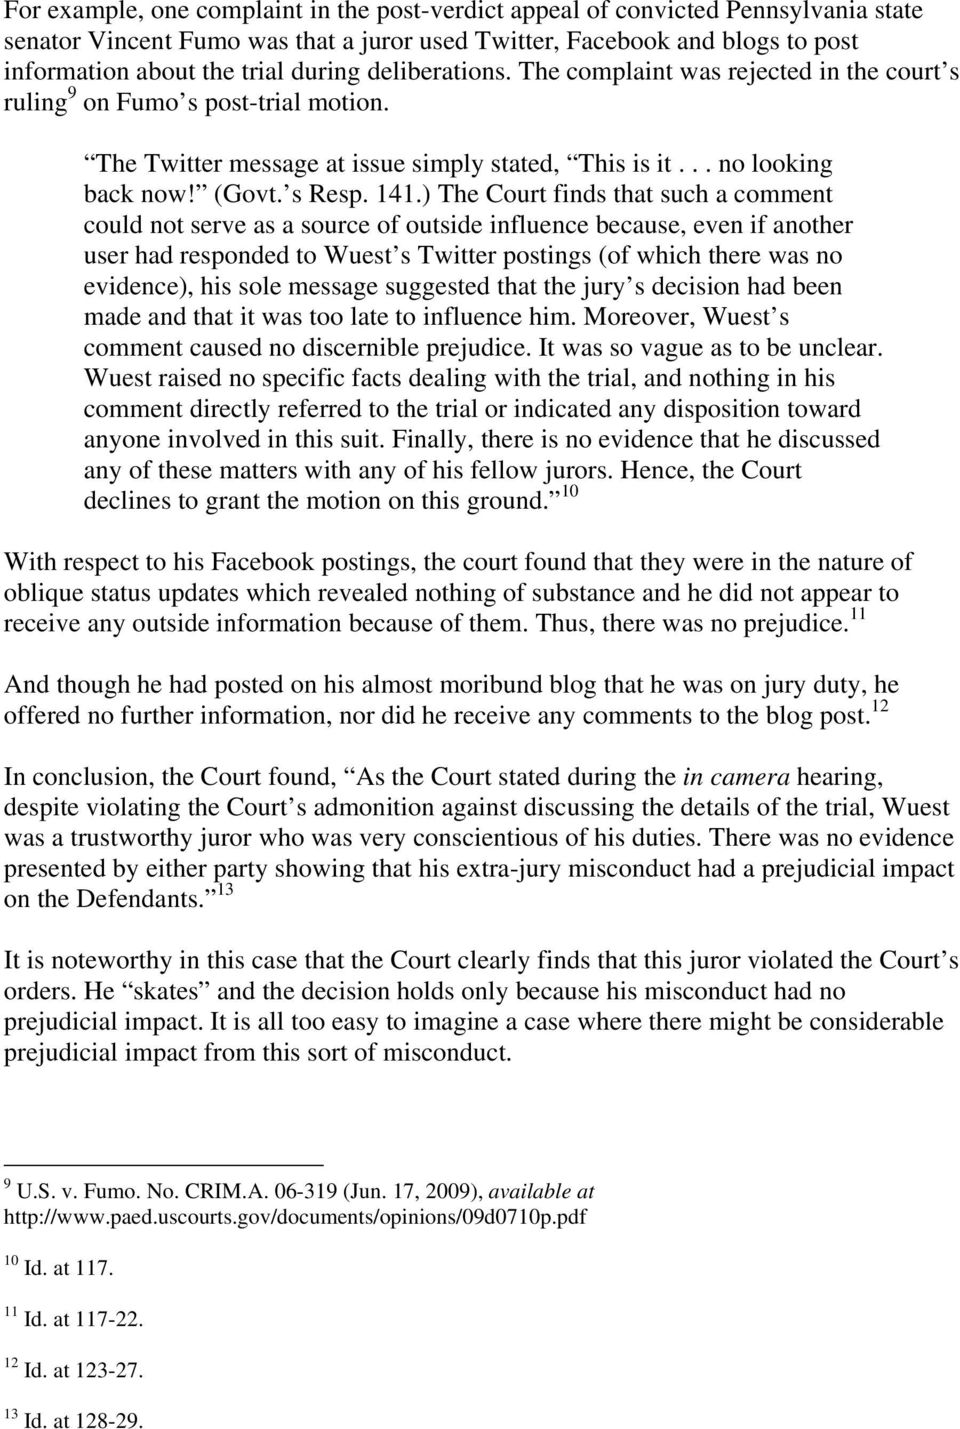 ) The Court finds that such a comment could not serve as a source of outside influence because, even if another user had responded to Wuest s Twitter postings (of which there was no evidence), his